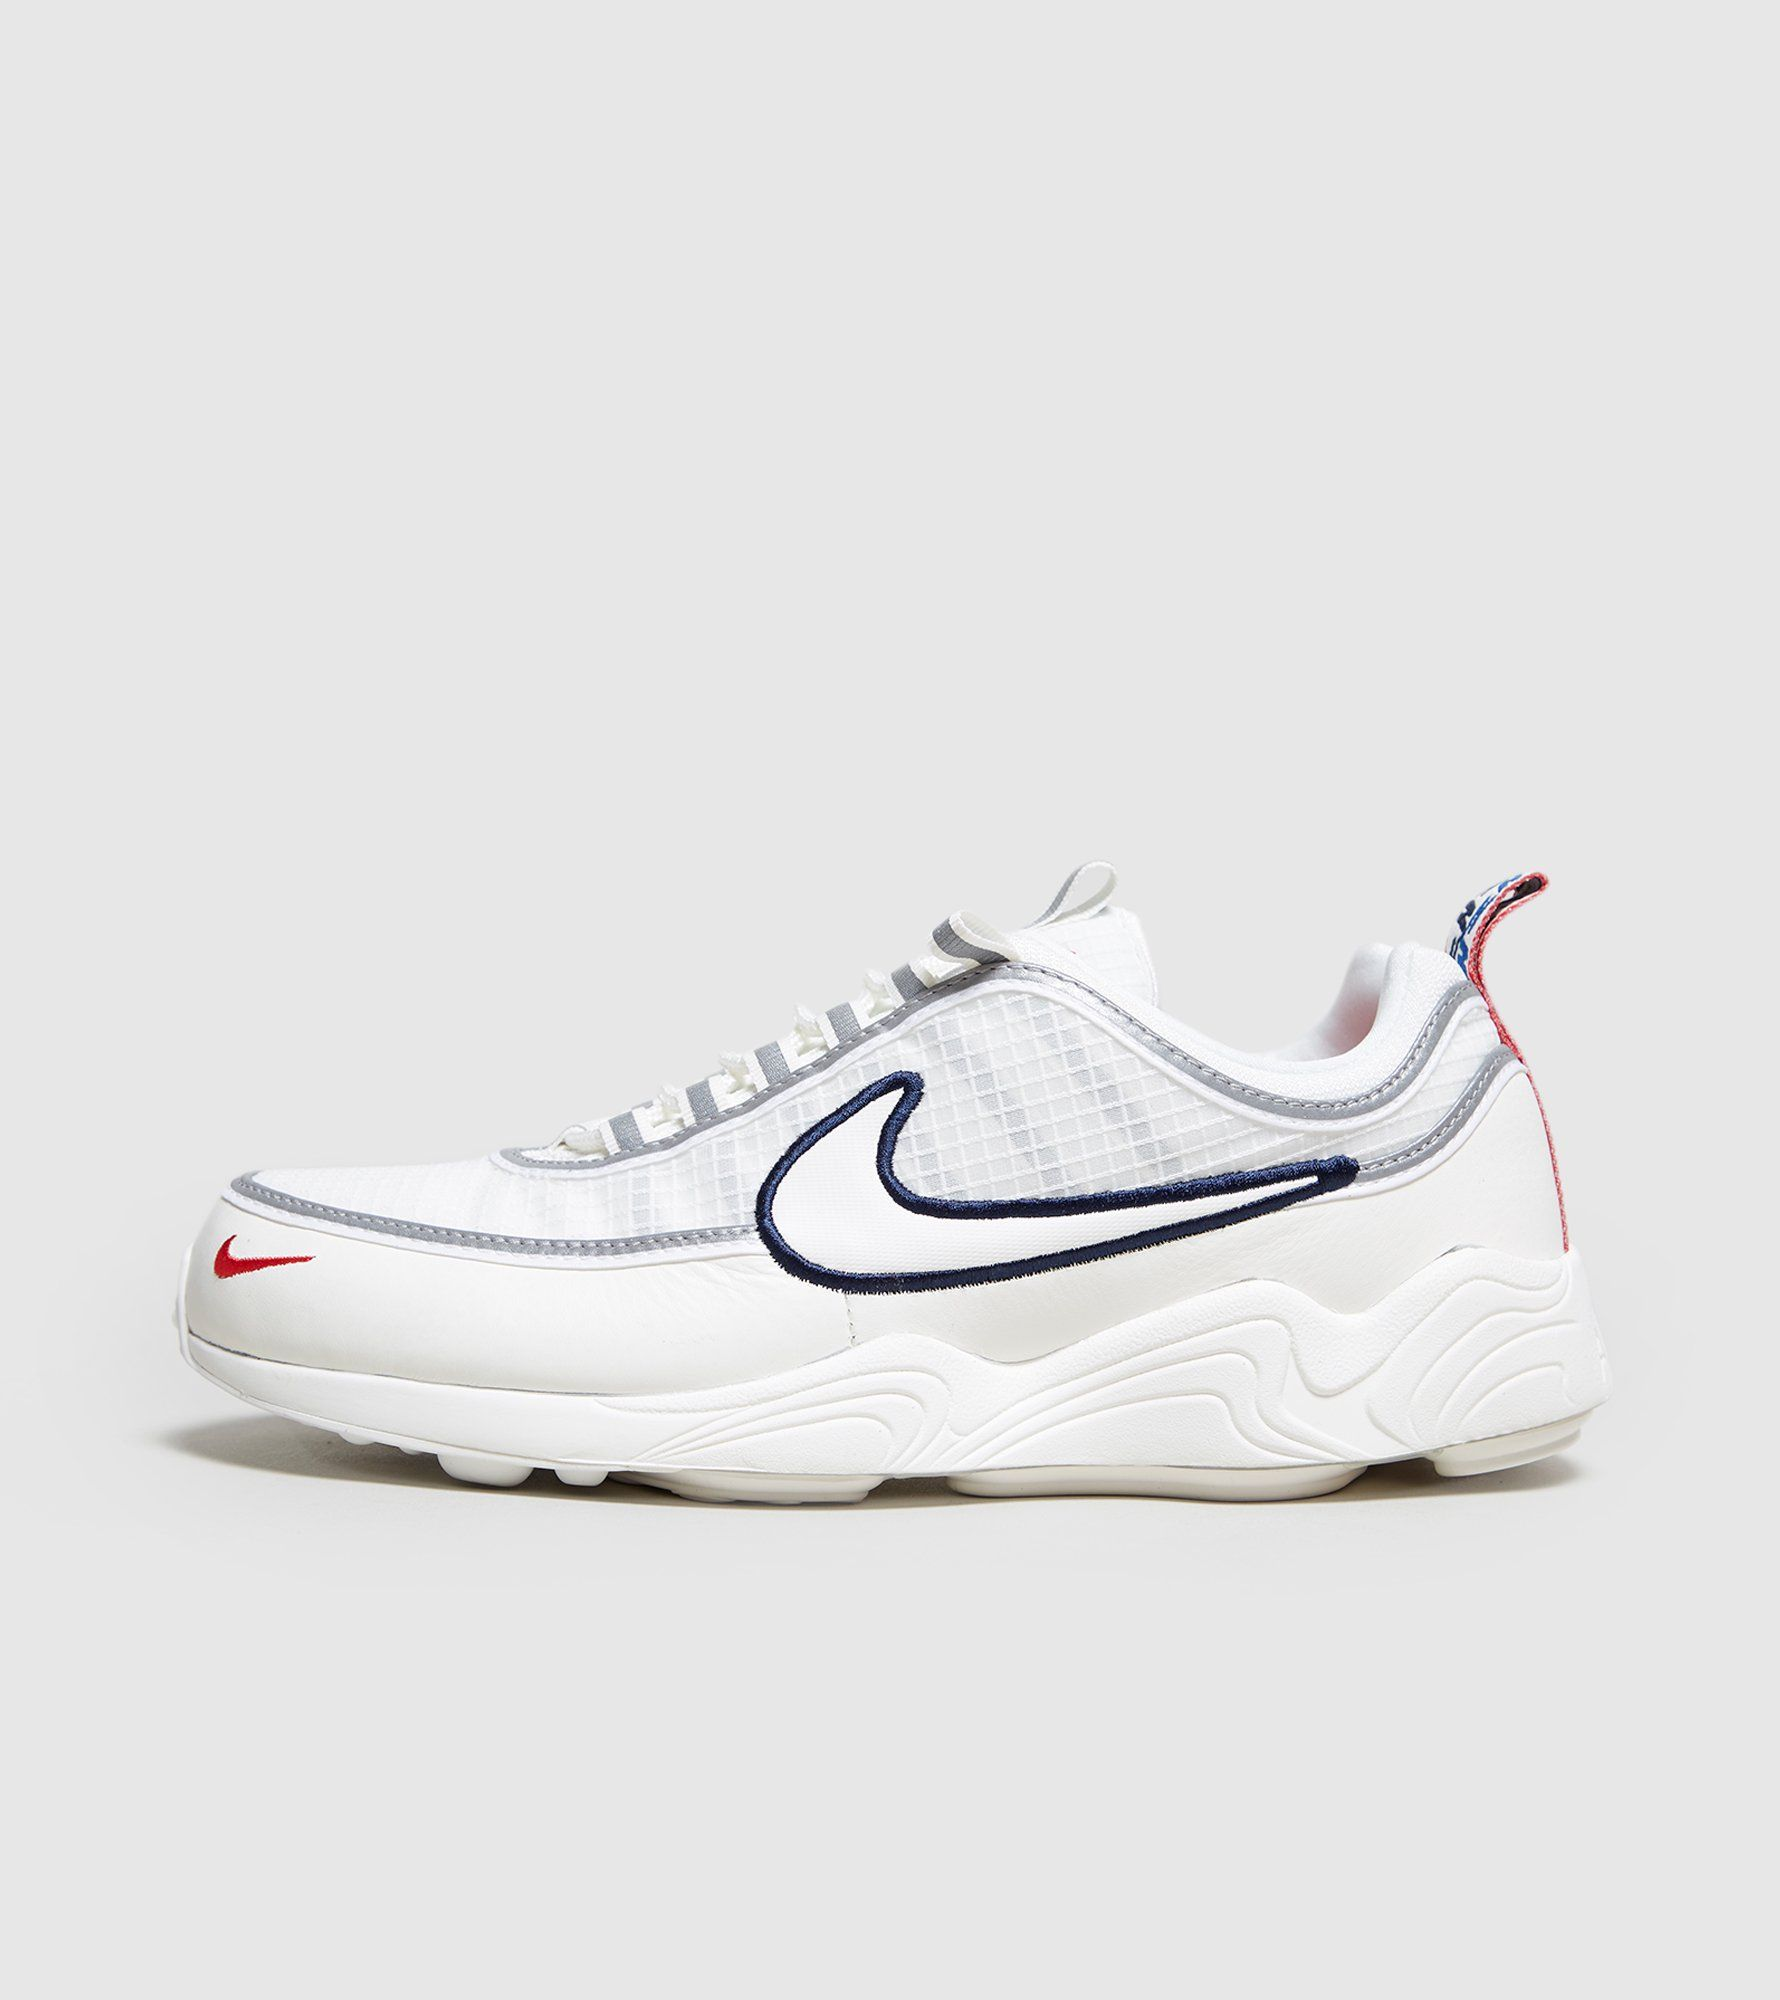 Nike Air Zoom Spiridon SE